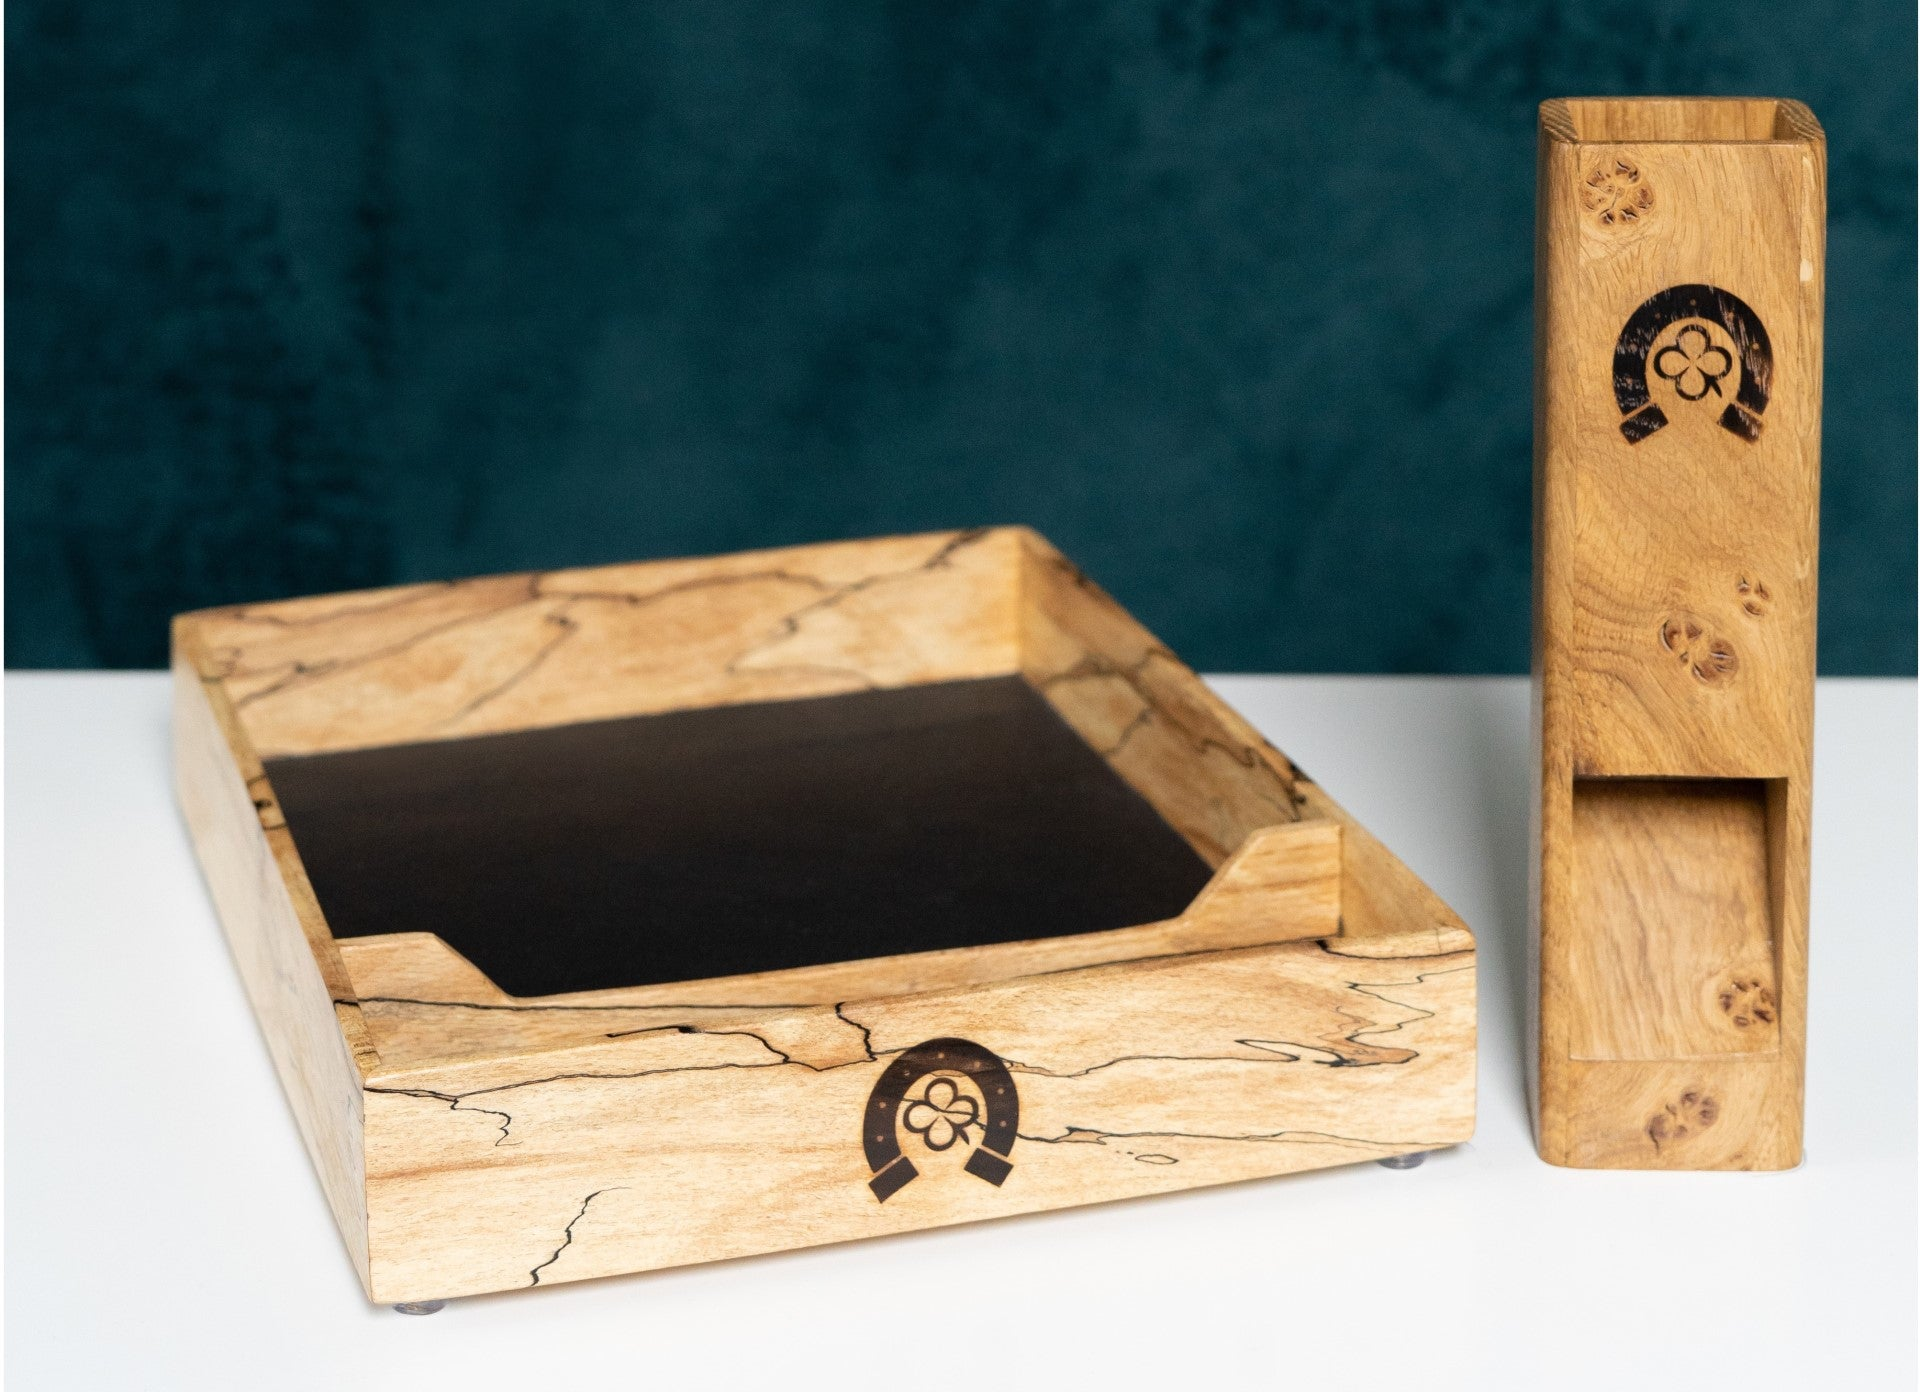 Spalted Beech dice tray & Pippy Oak dice tower